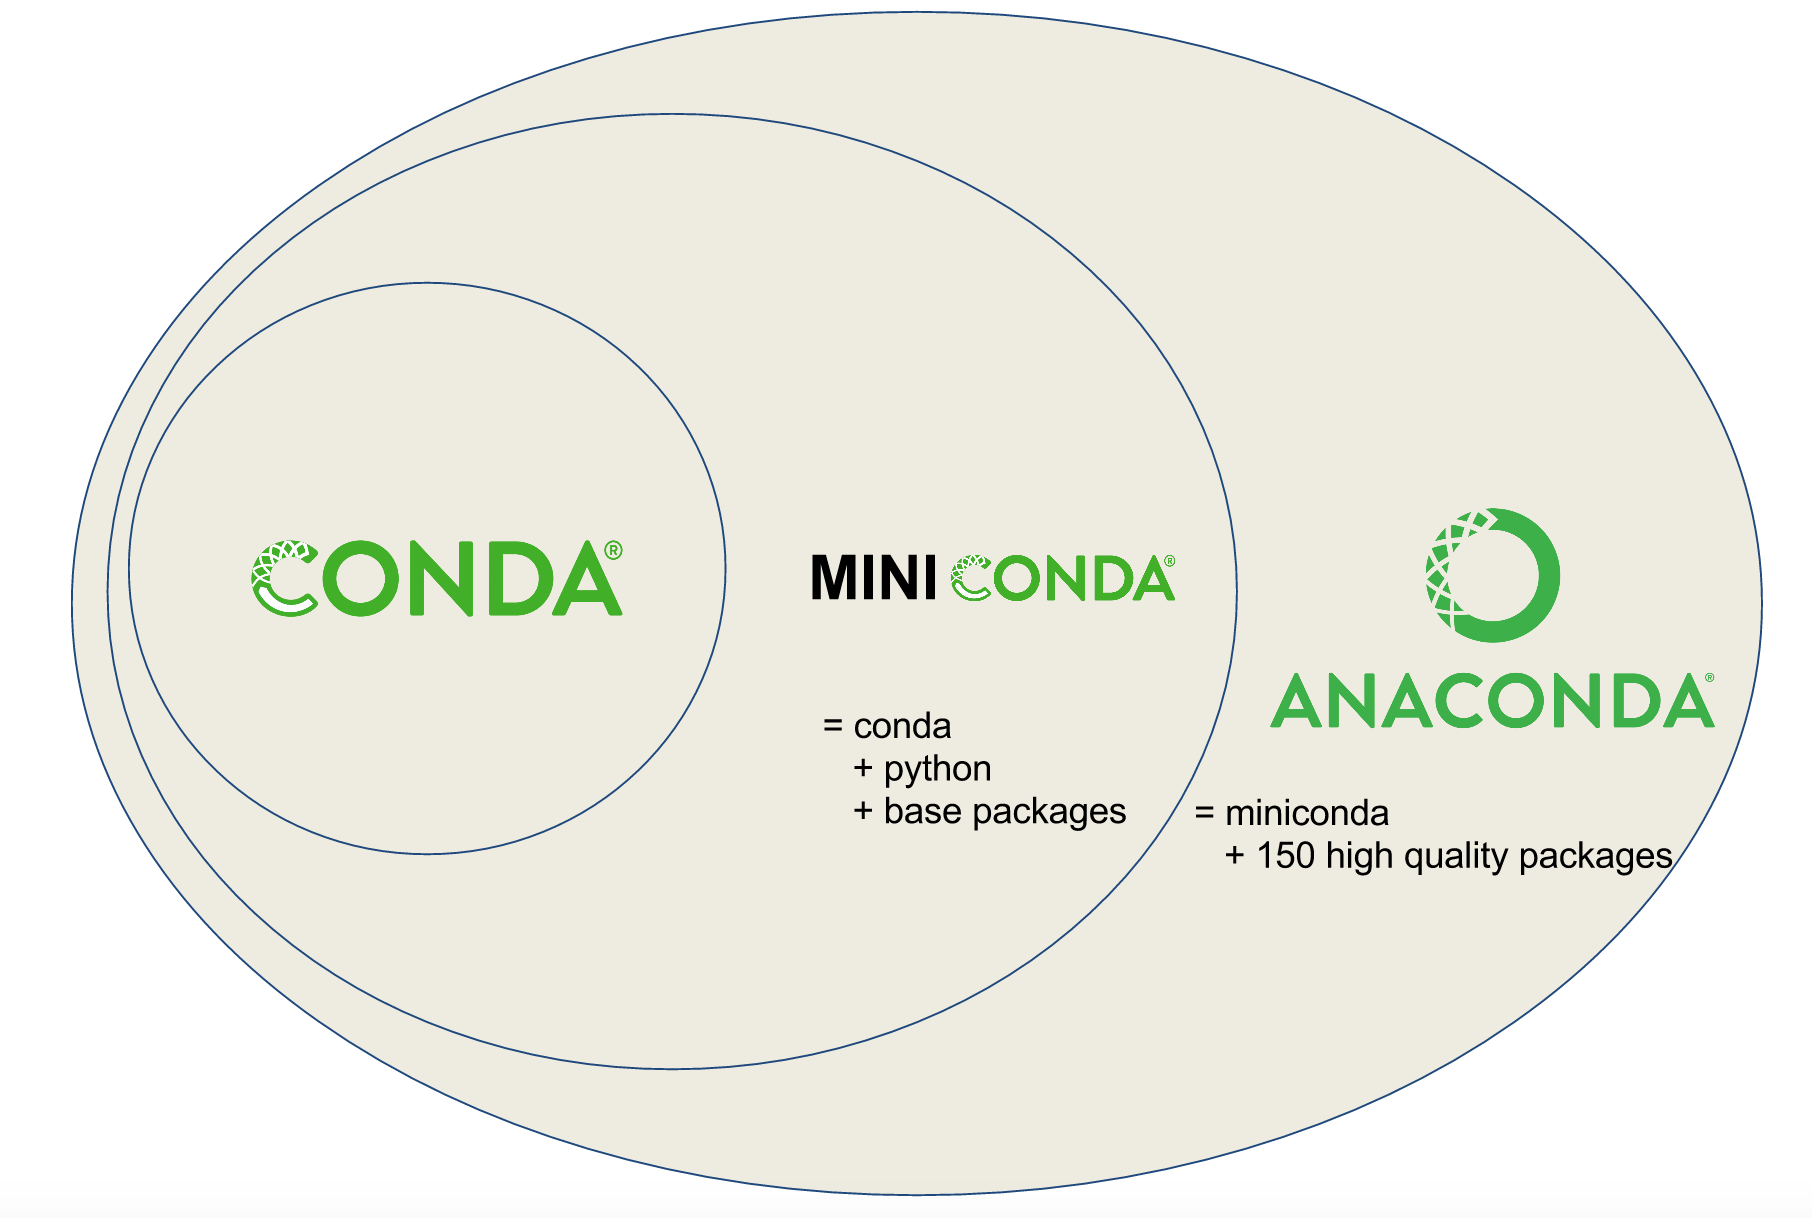 Diagram describing the relationship between Conda, Miniconda, and Anaconda.